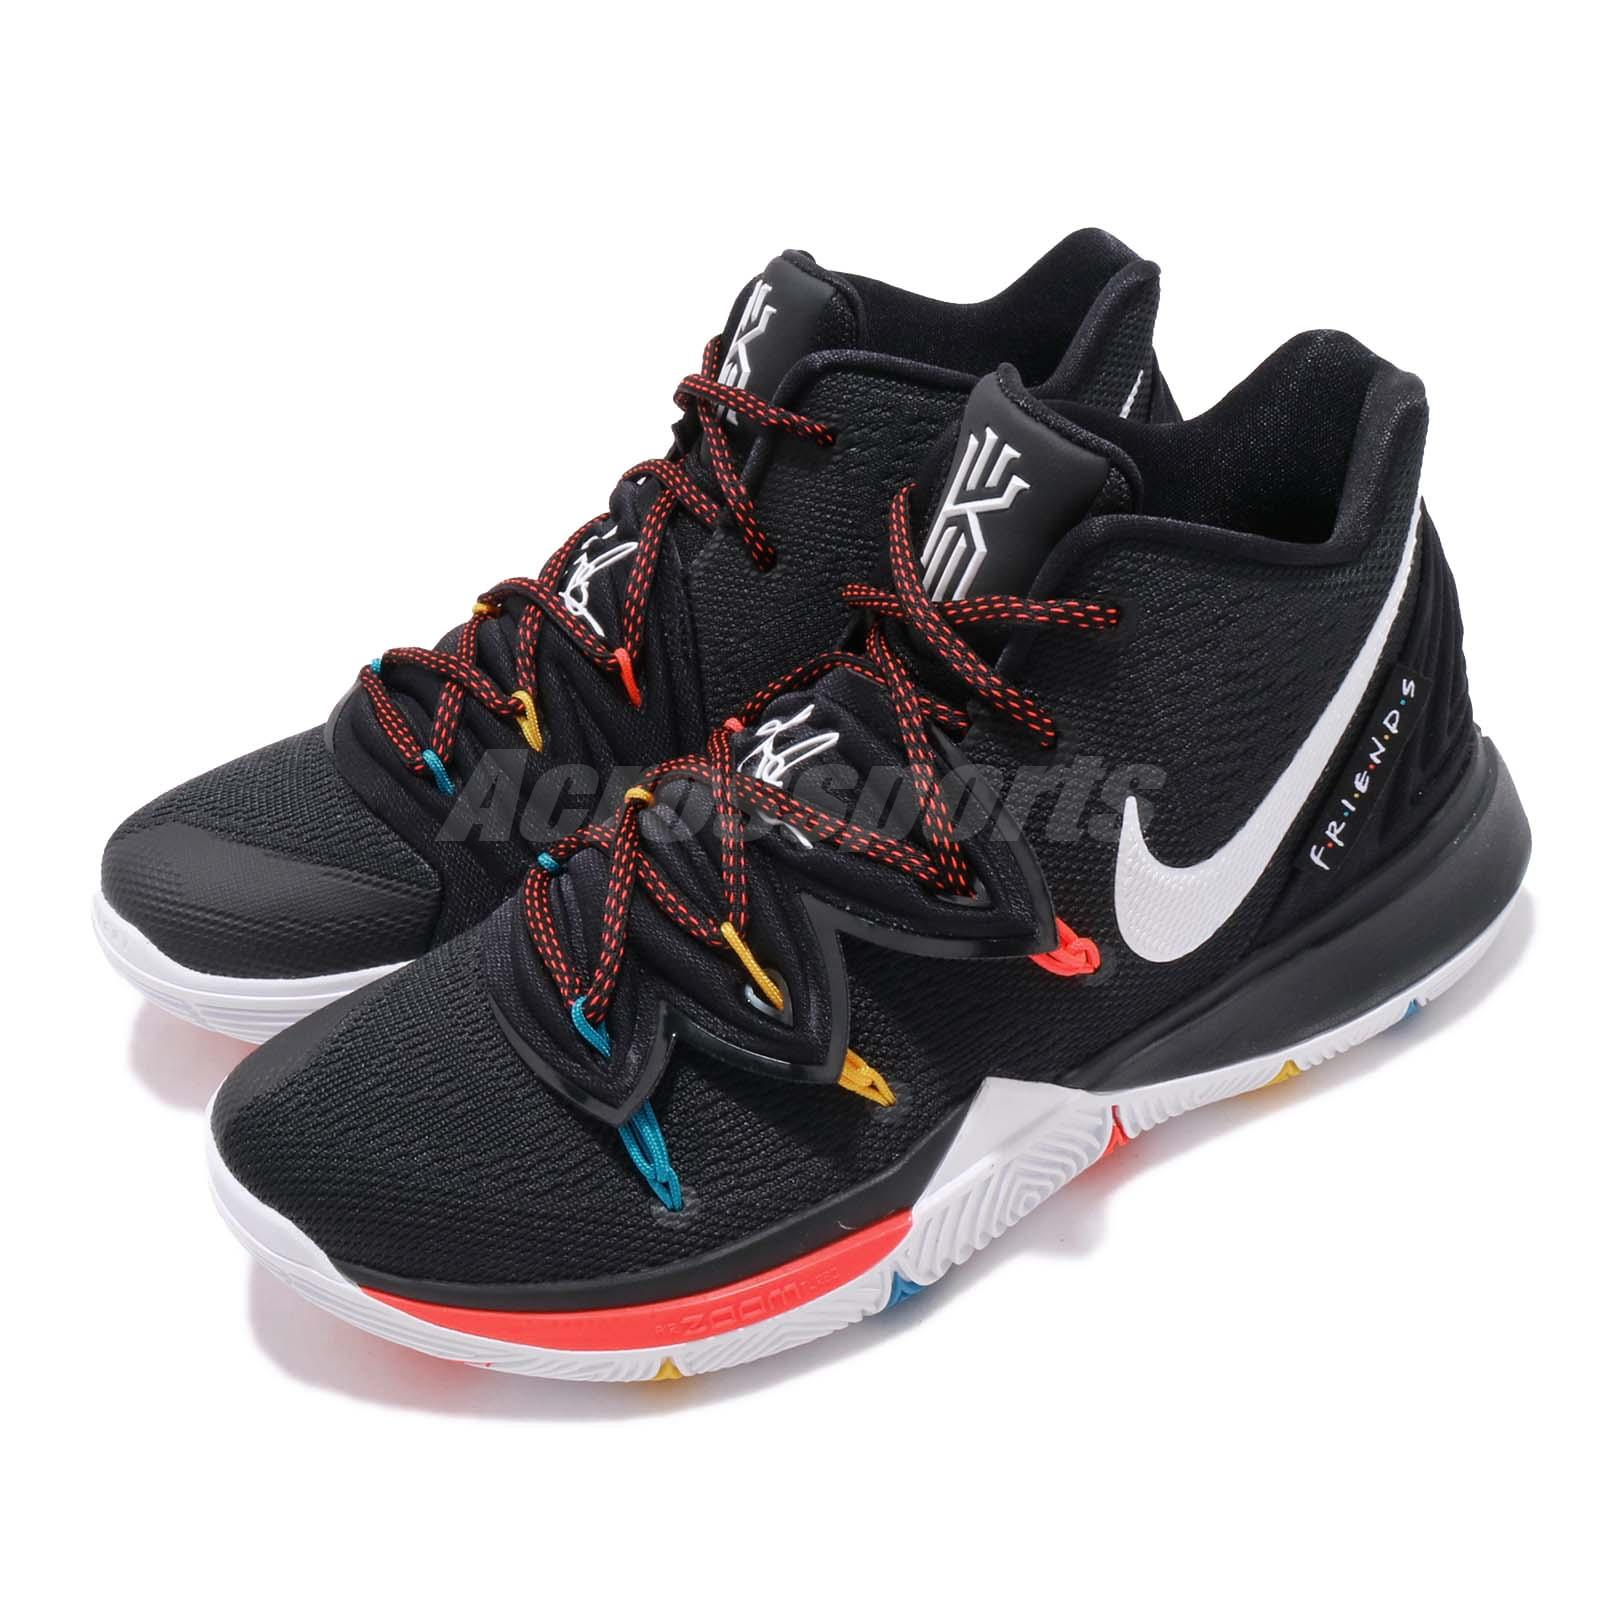 premium selection 98cee 31033 Details about Nike Kyrie 5 EP V Irving FRIENDS Black White Bright Crimson  Men Shoes AO2919-006